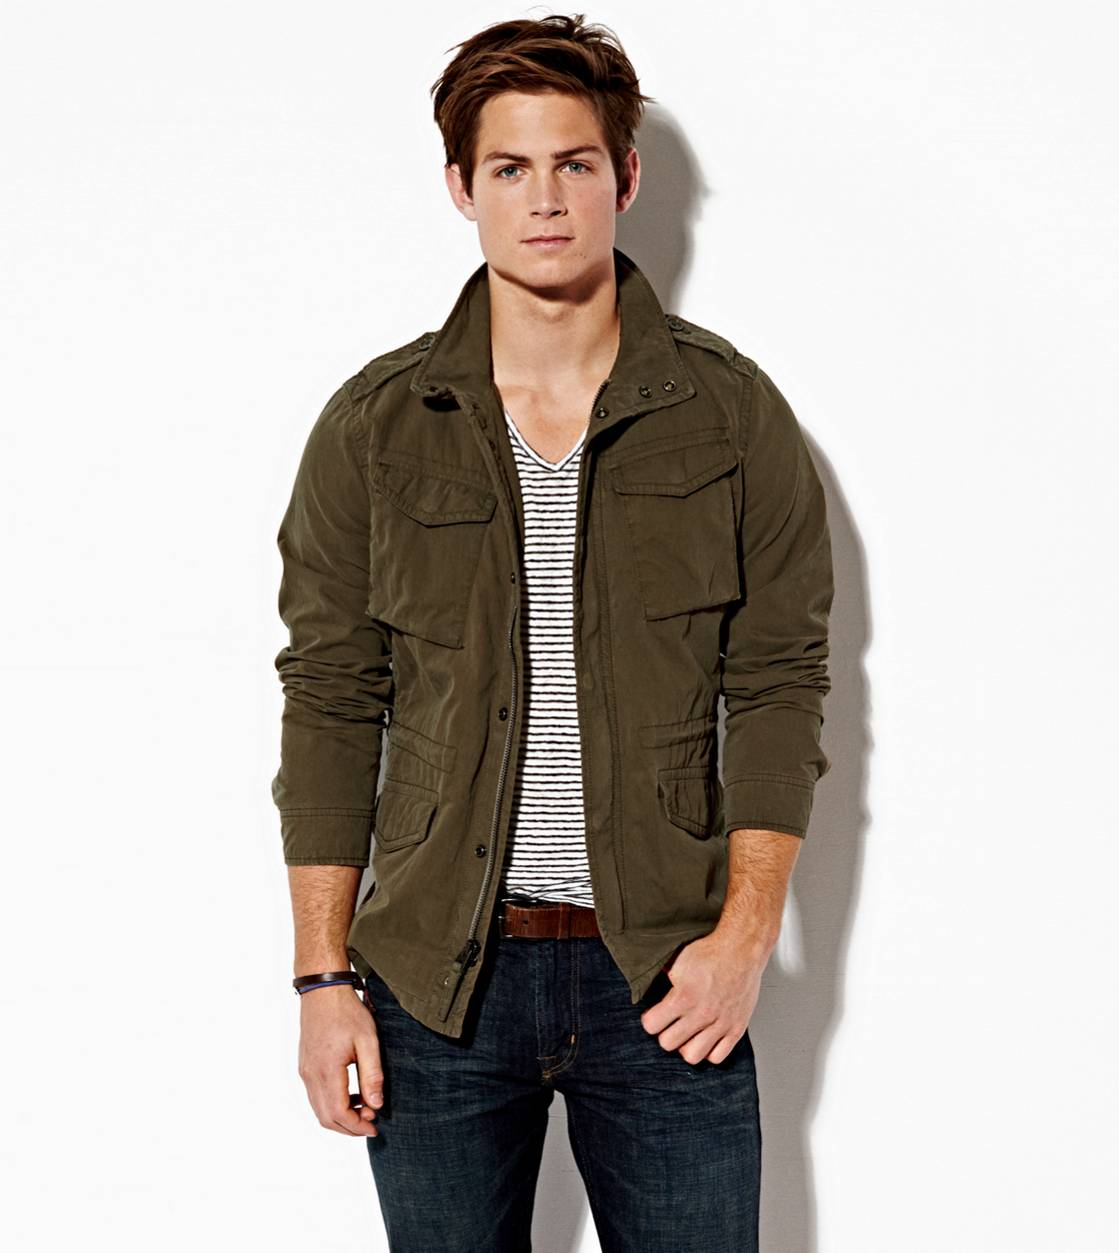 Mens jacket reddit